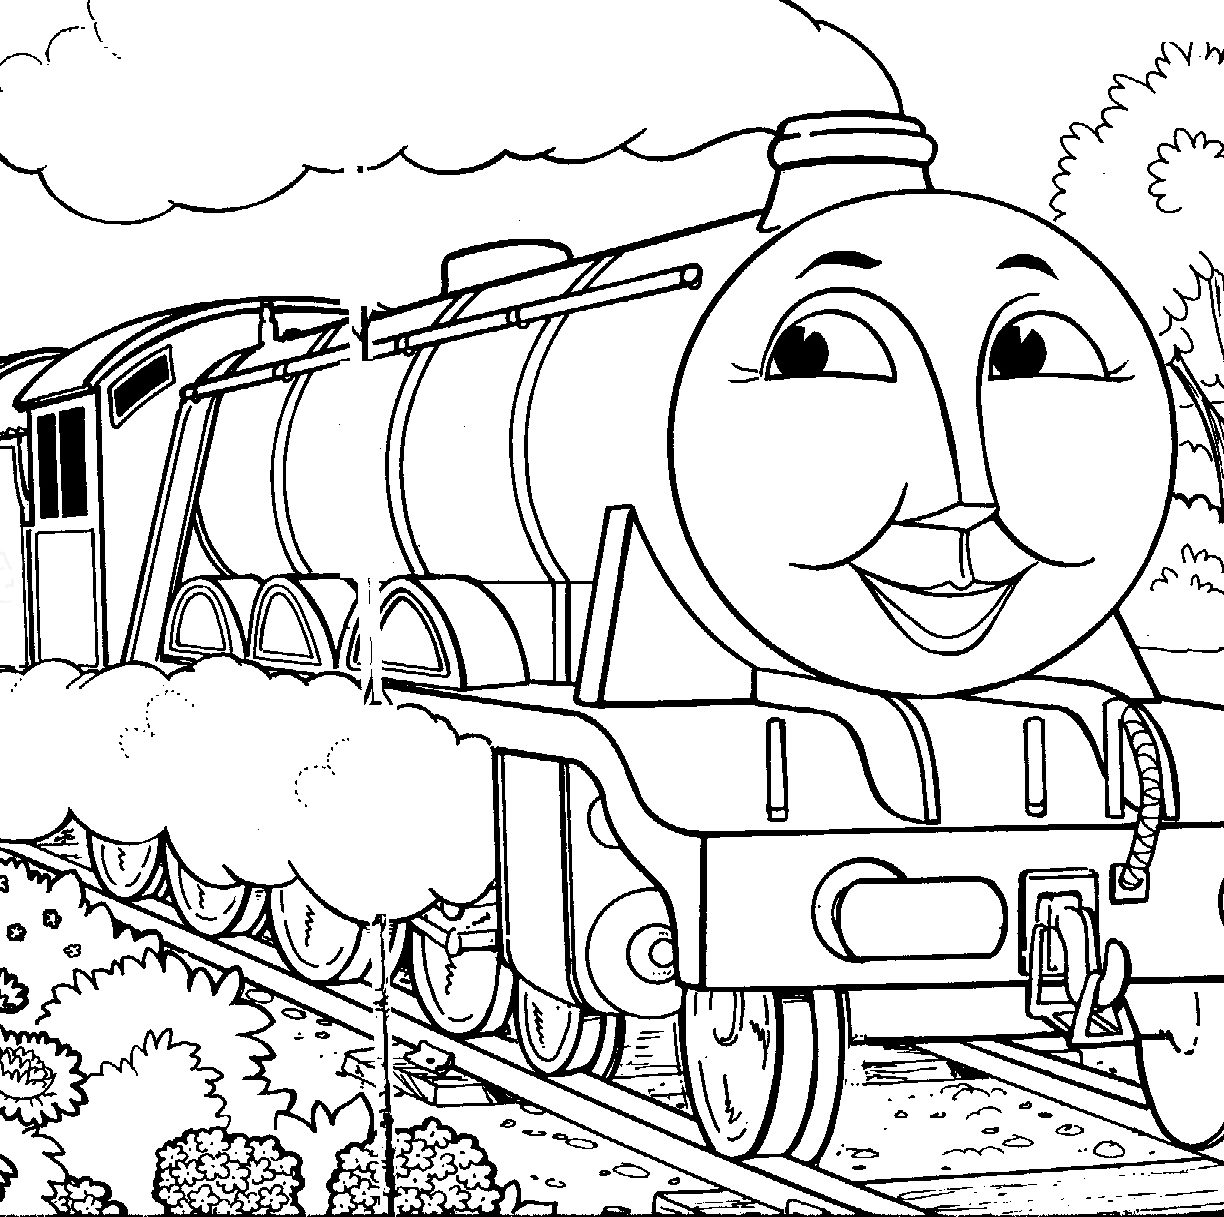 1224x1217 Coloring Pages Trainsmmonpence Train For Kids Caboose Printable